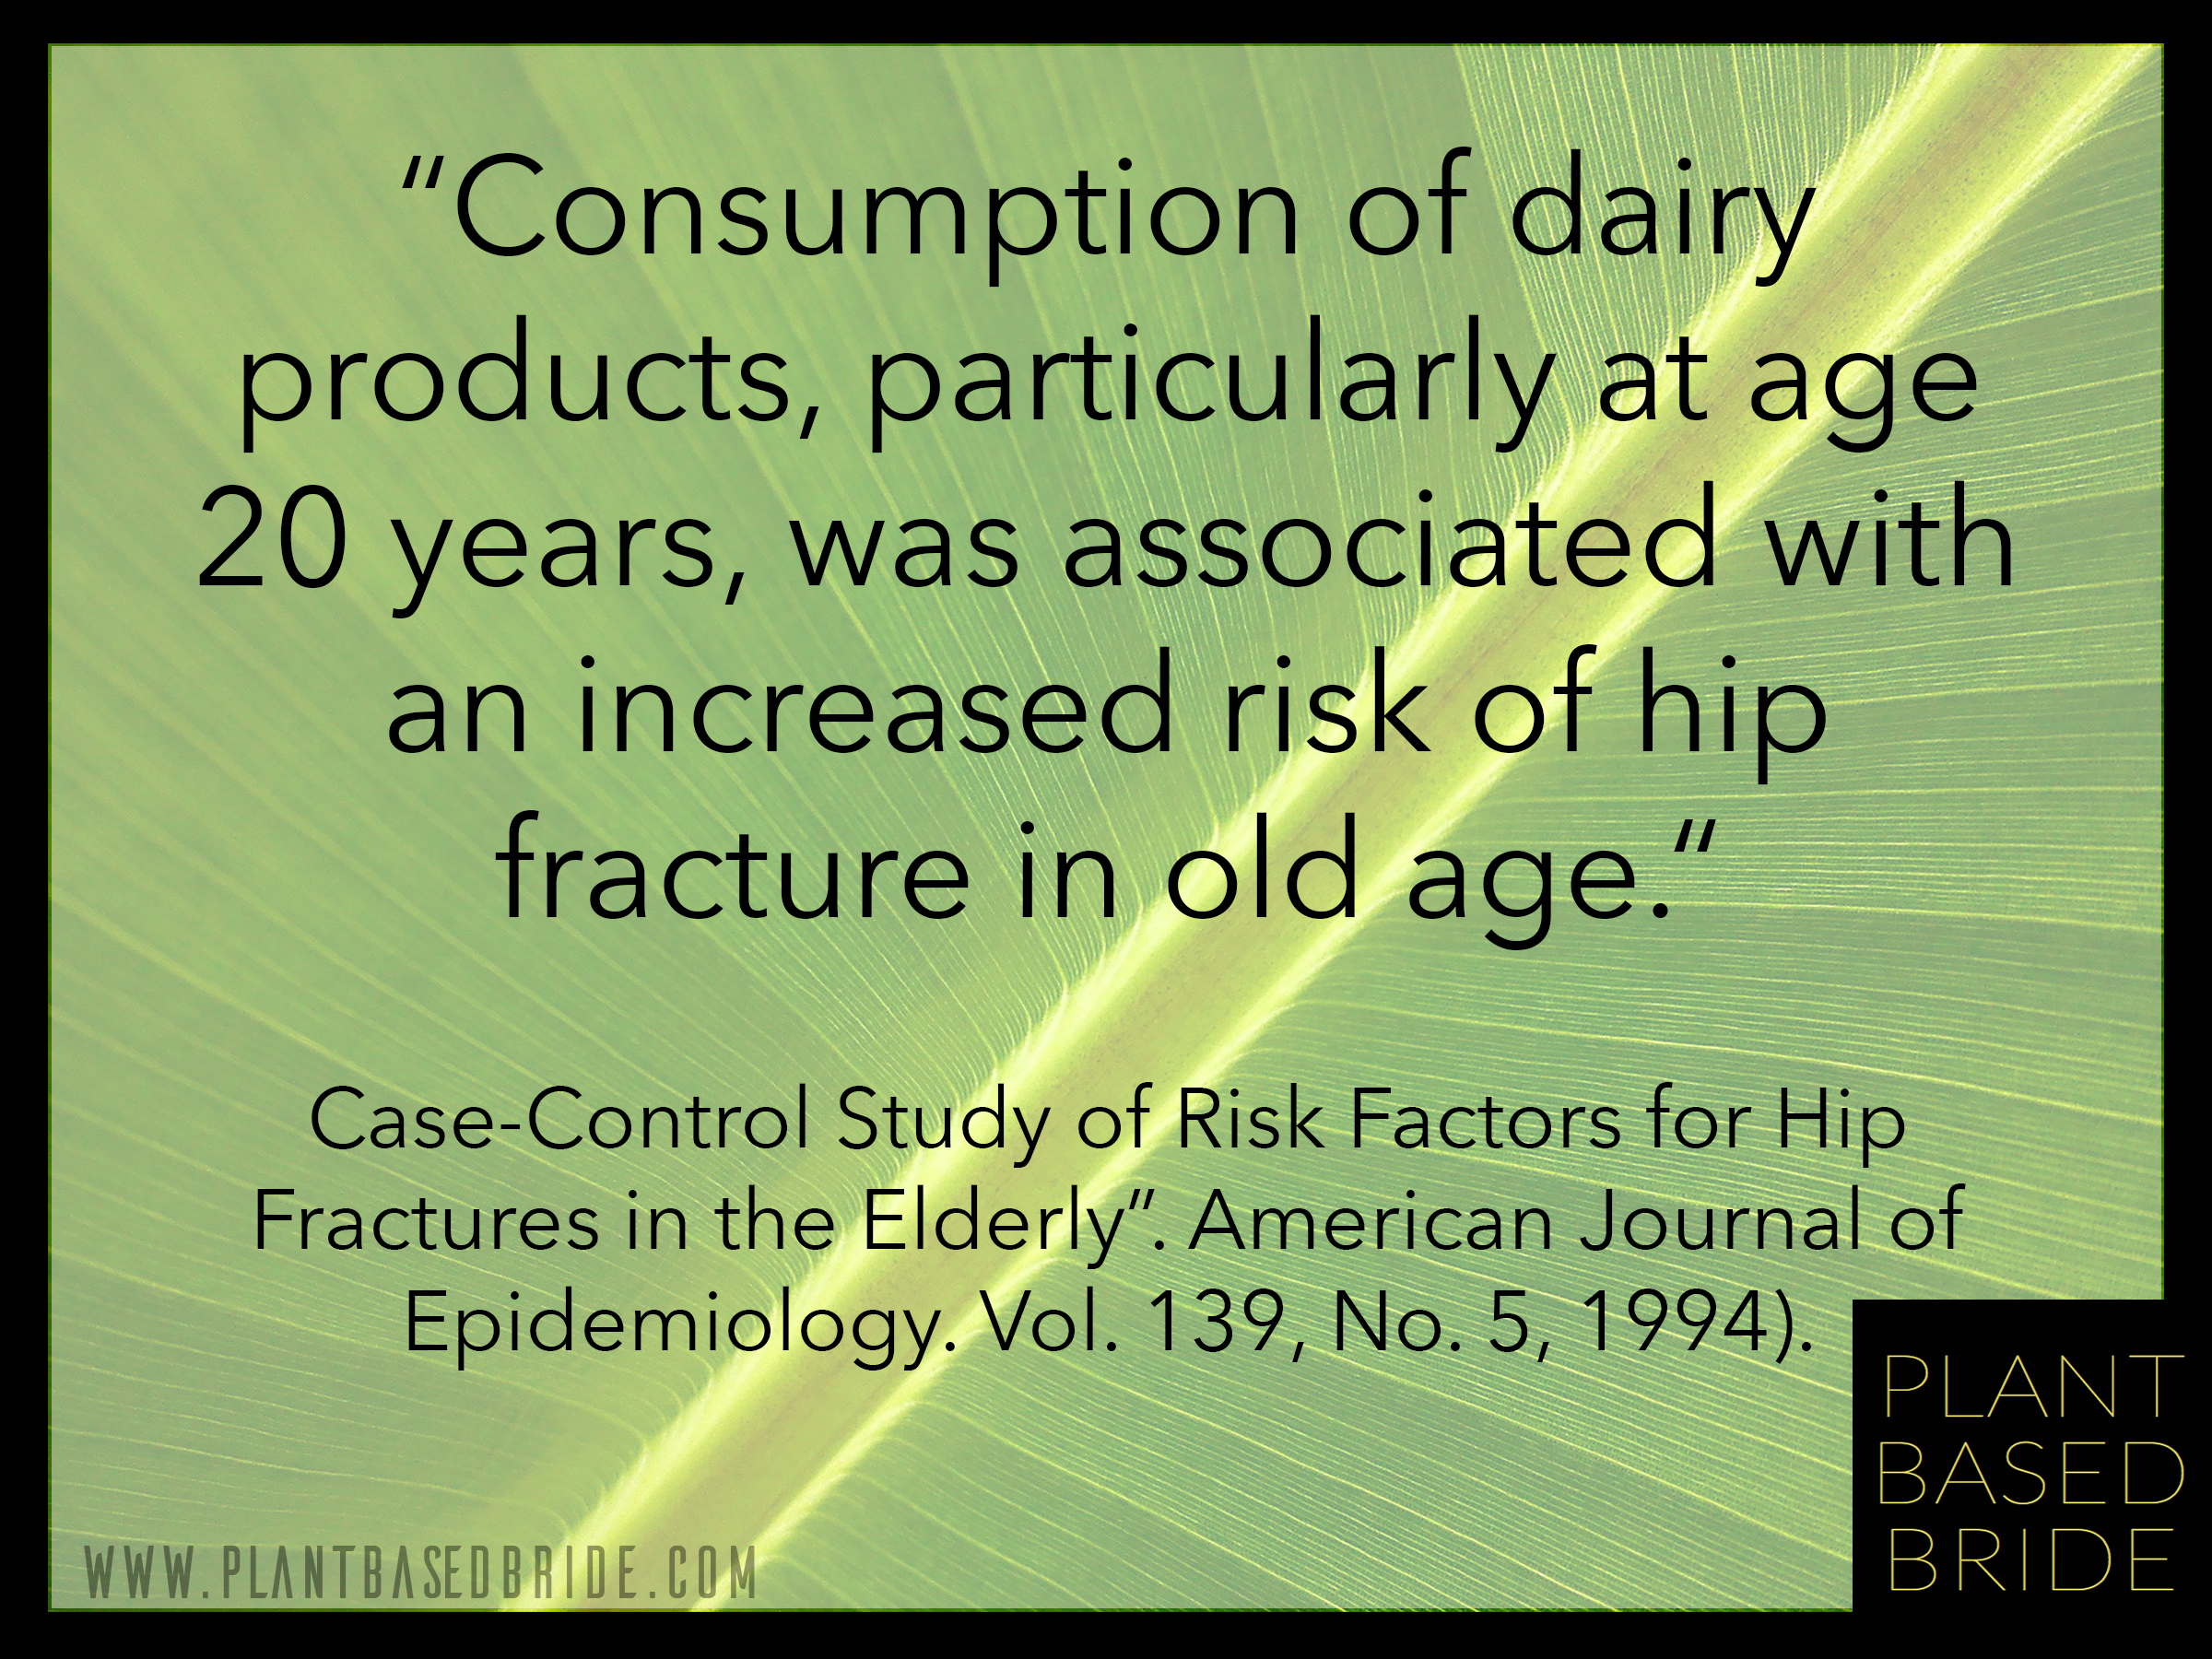 Negative effects of milk consumption on bone health has been proven time and time again.  So why isn't it common knowledge?  Plant Based Bride